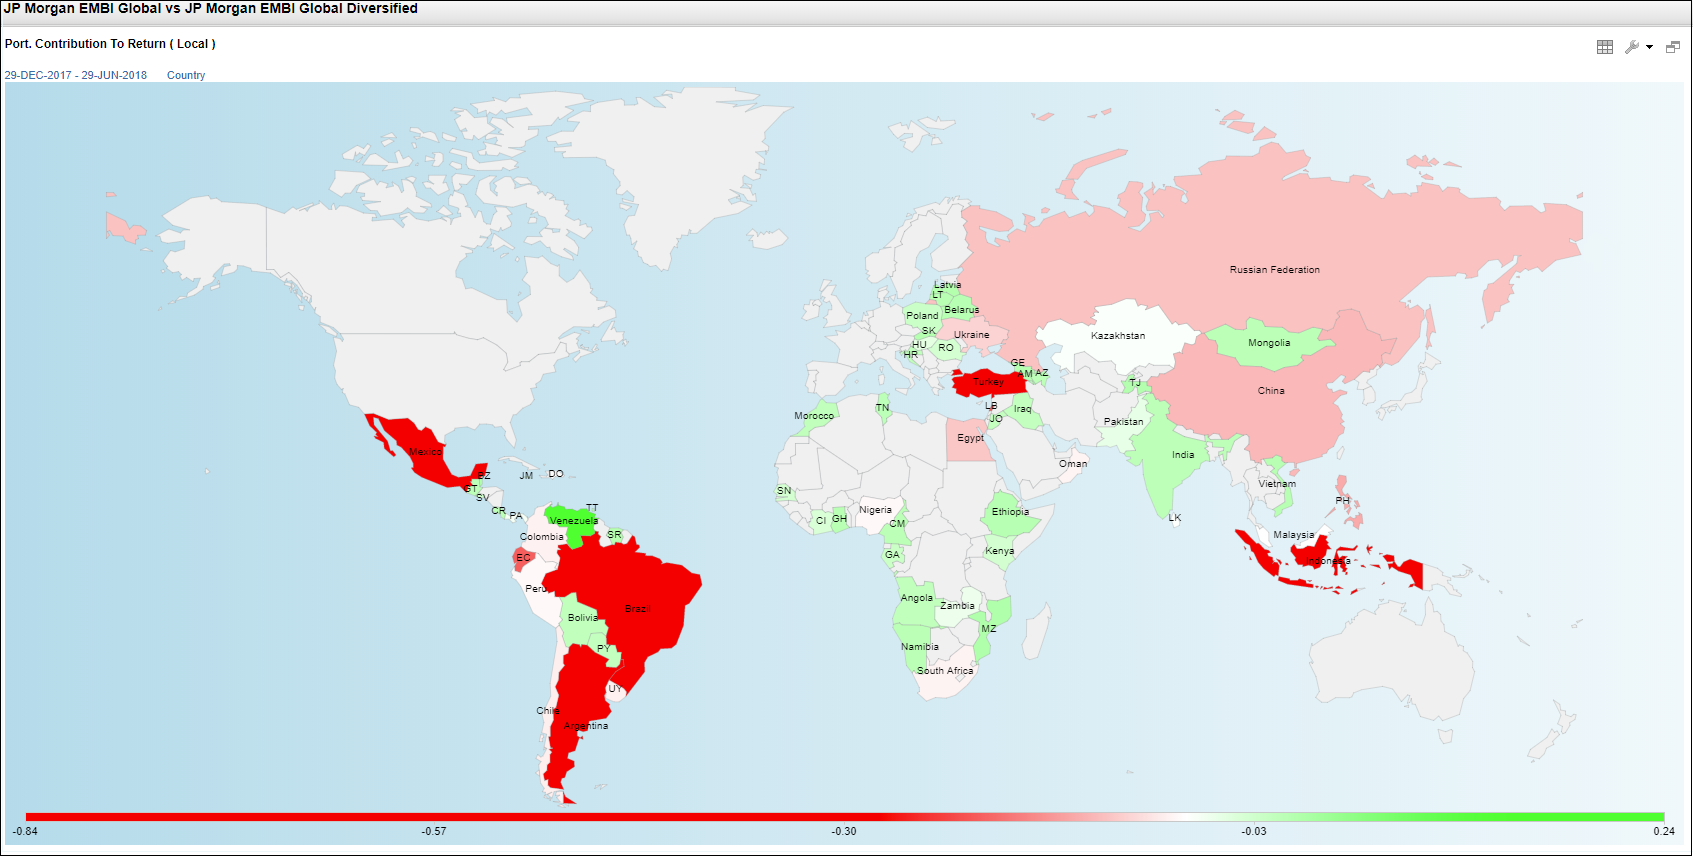 Geographic Heat Map of Contribution